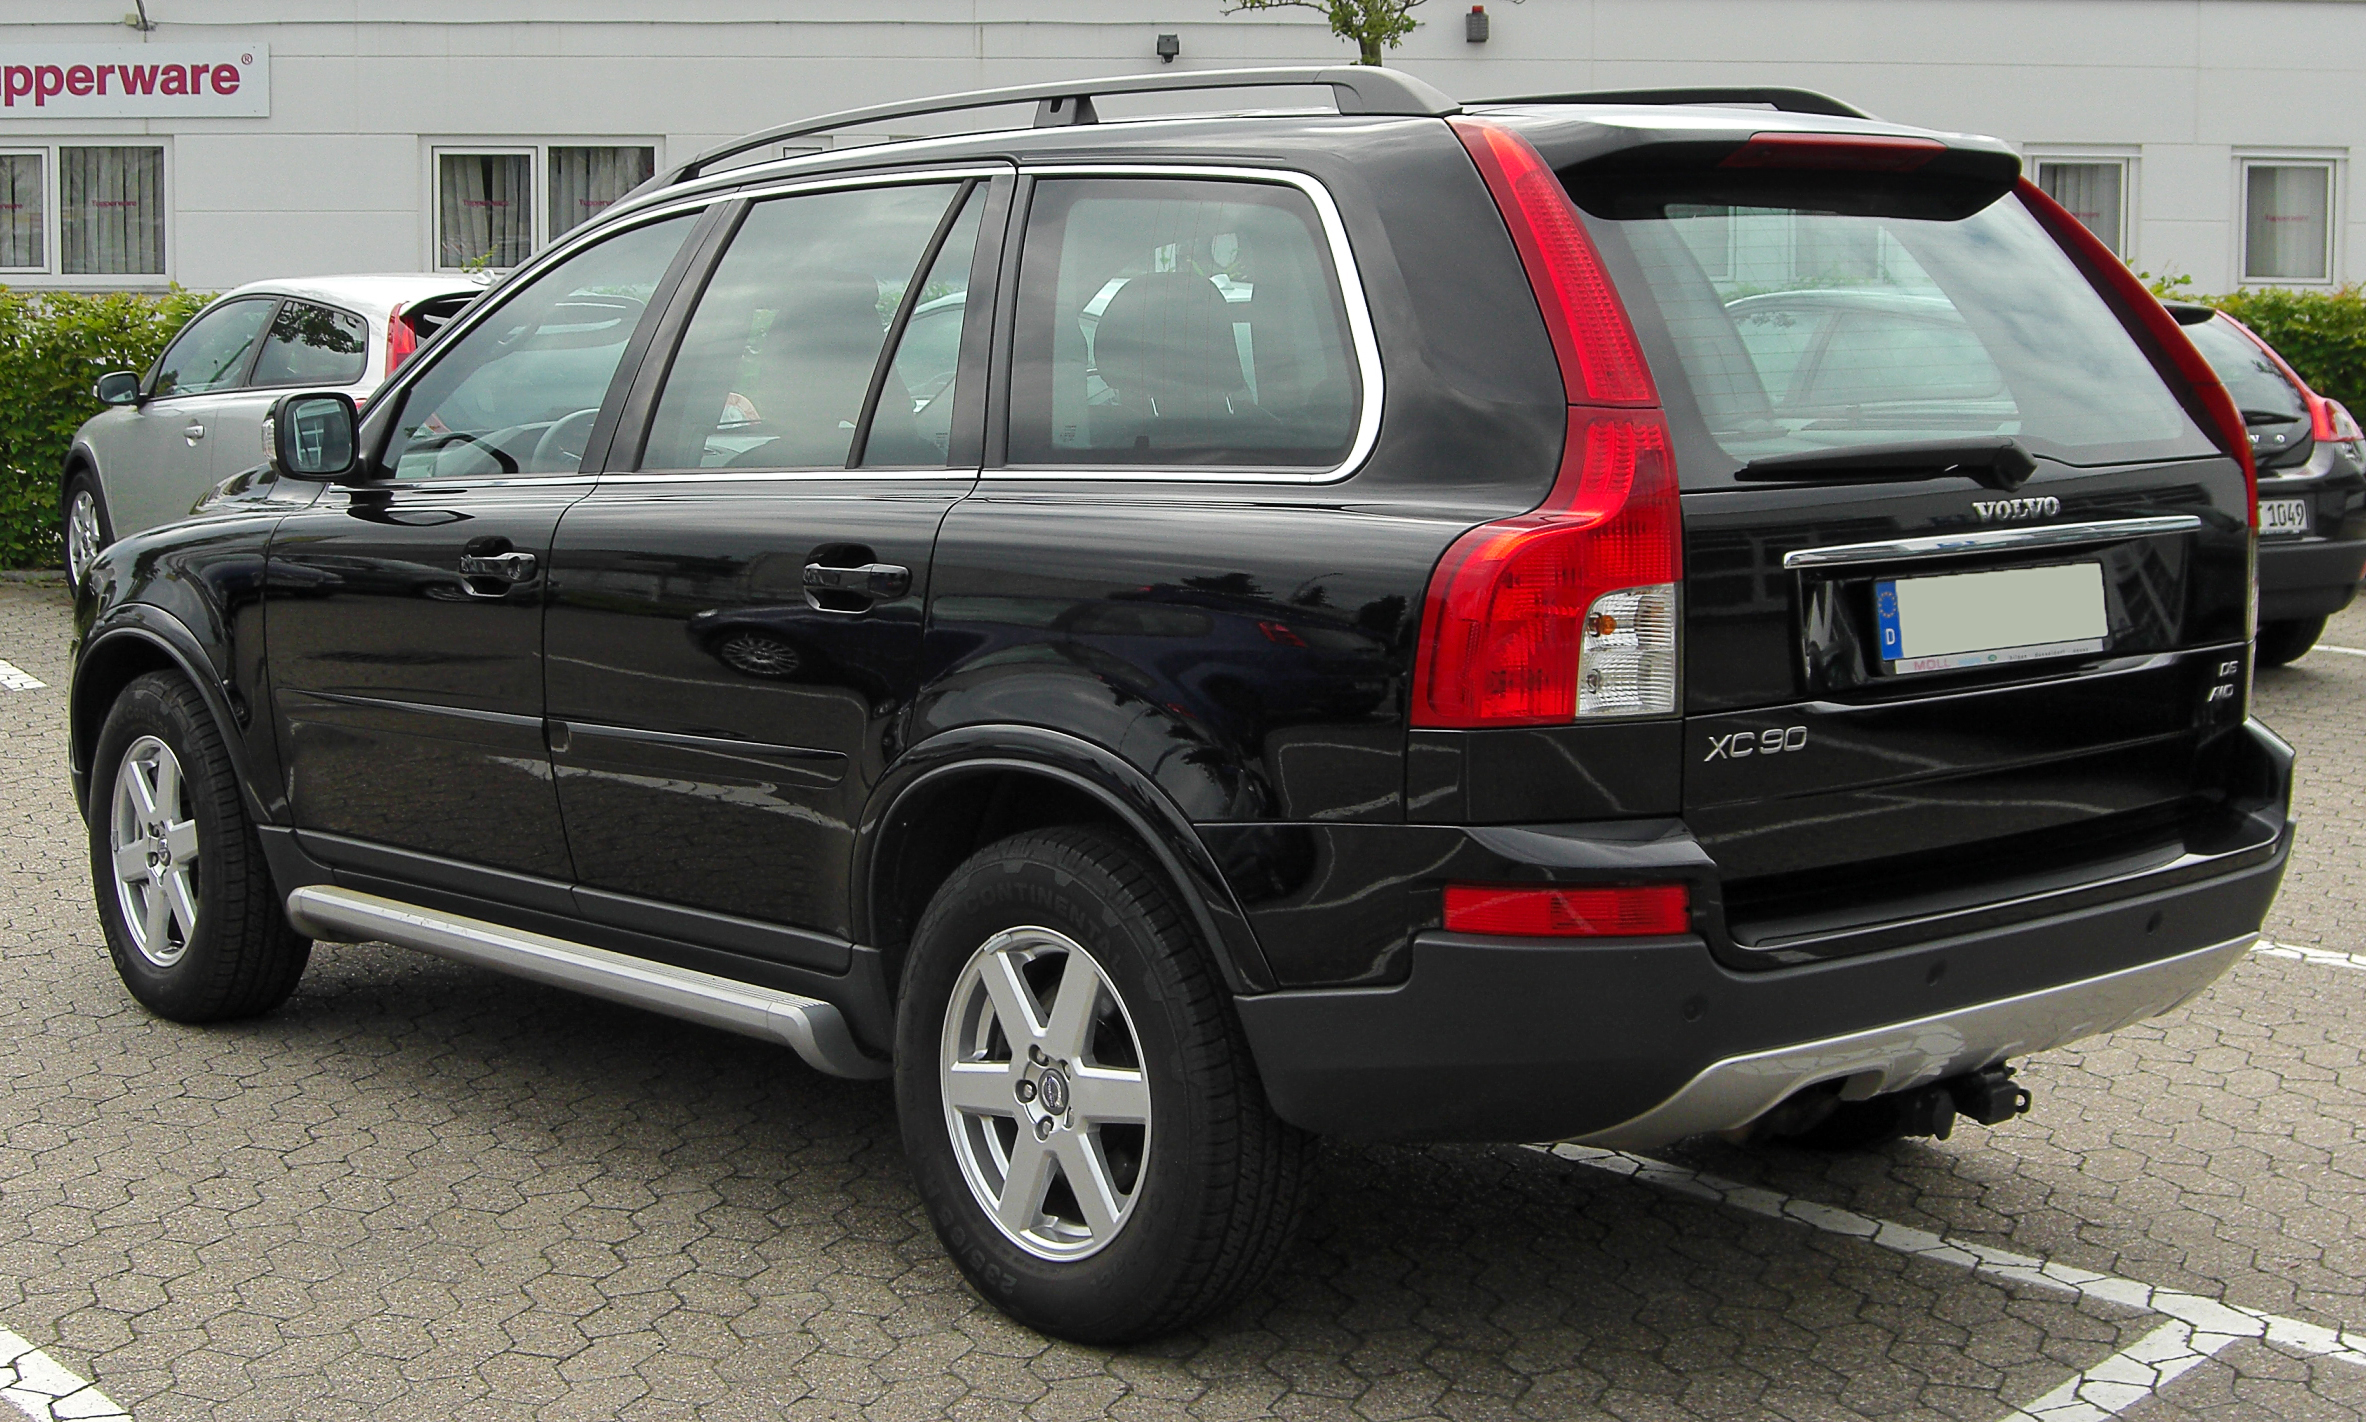 file volvo xc90 d5 awd facelift rear. Black Bedroom Furniture Sets. Home Design Ideas